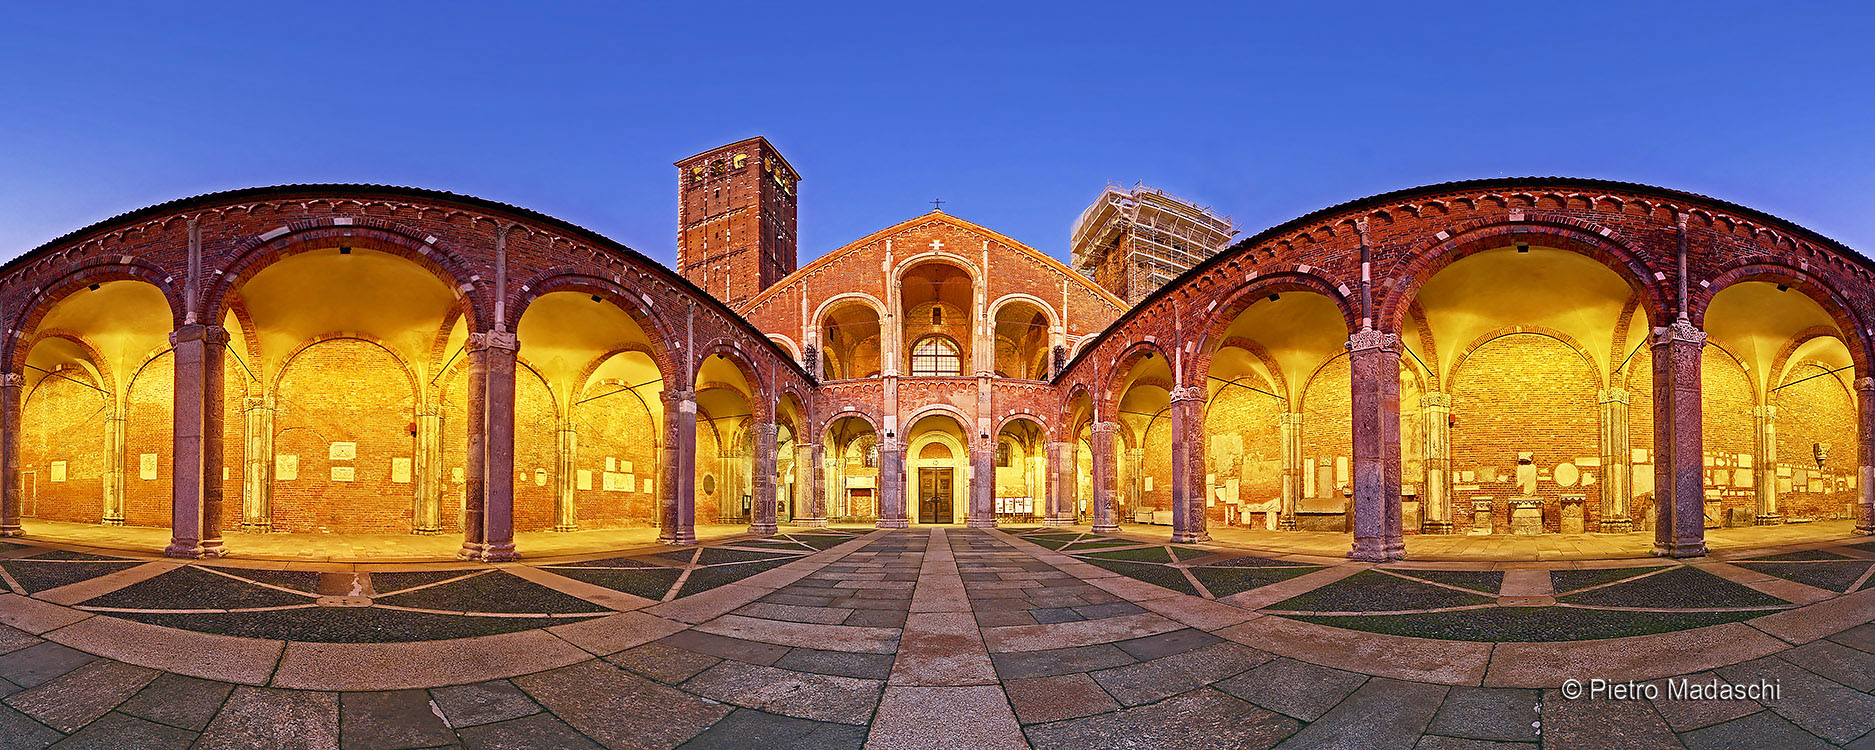 The Basilica of St Ambrose: the Atrium of Ansperto and the Facade at evening